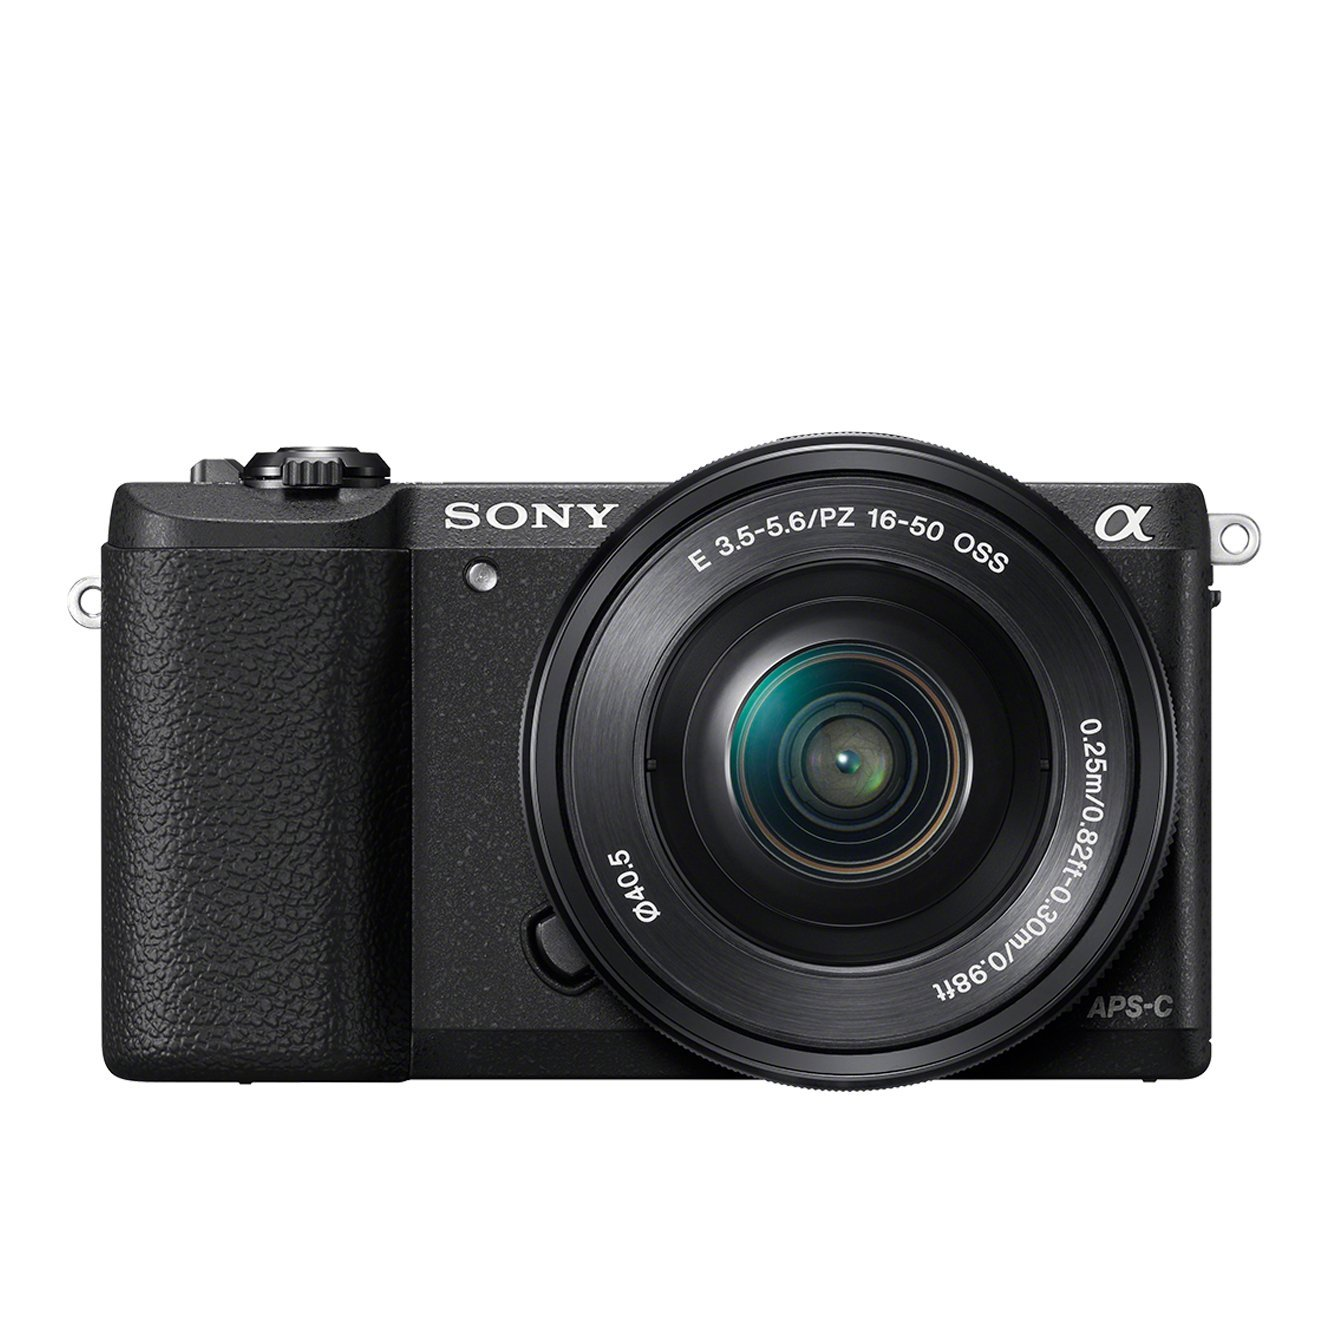 Sony Alpha 5100L Fotocamera Digitale Mirrorless Compatta con Obiettivo Intercambiabile 16-50 mm, Sensore APS-C CMOS Exmor da 24.3 MP, Nero product image